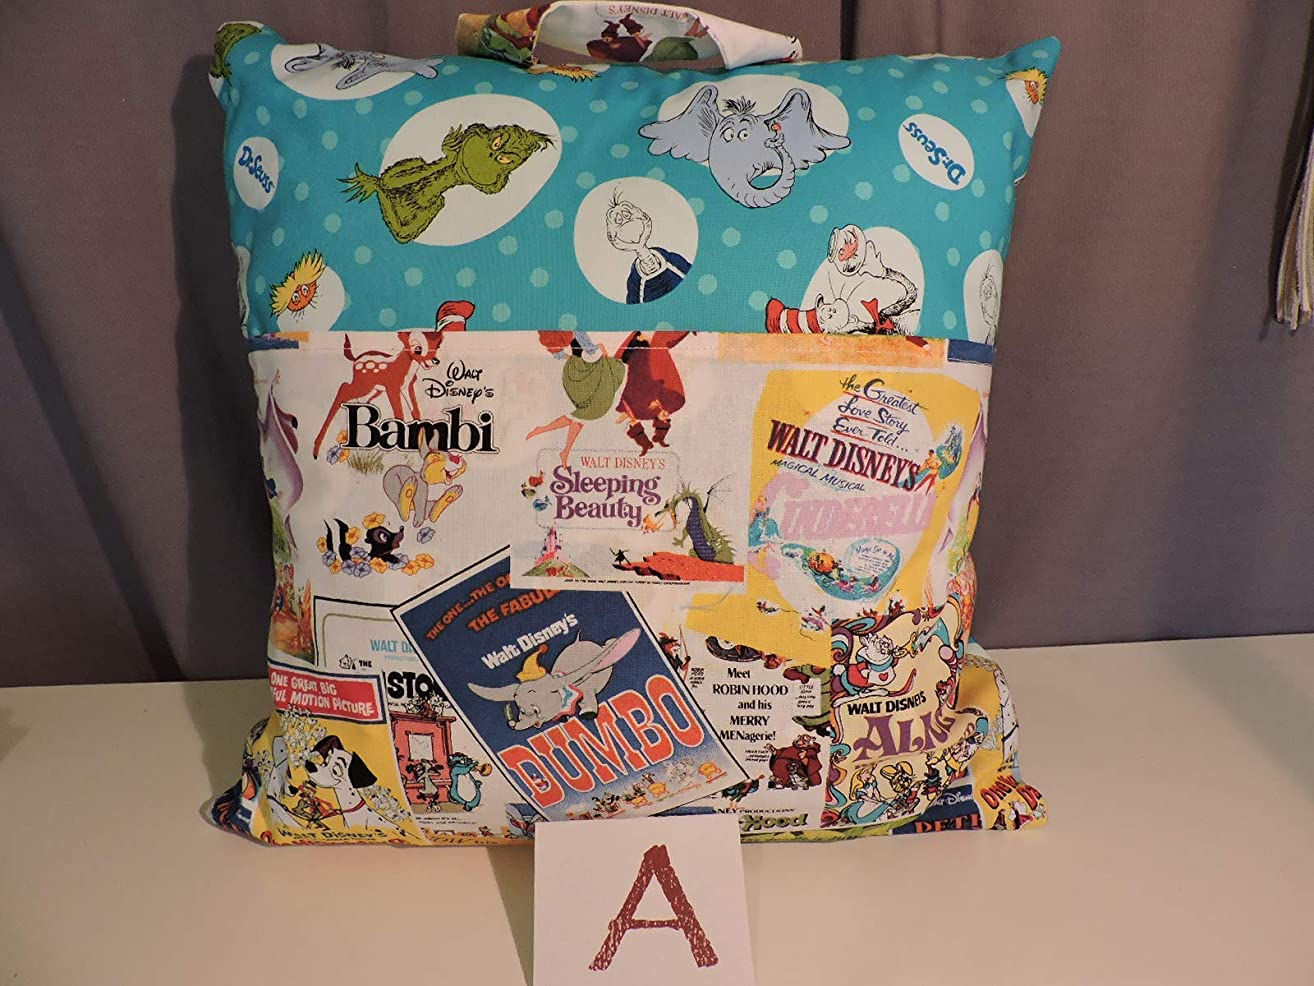 Child's Reader Pillow, Pocket Pillow with Dr Suess, featuring Disney Films/Books on Front Flap - 16